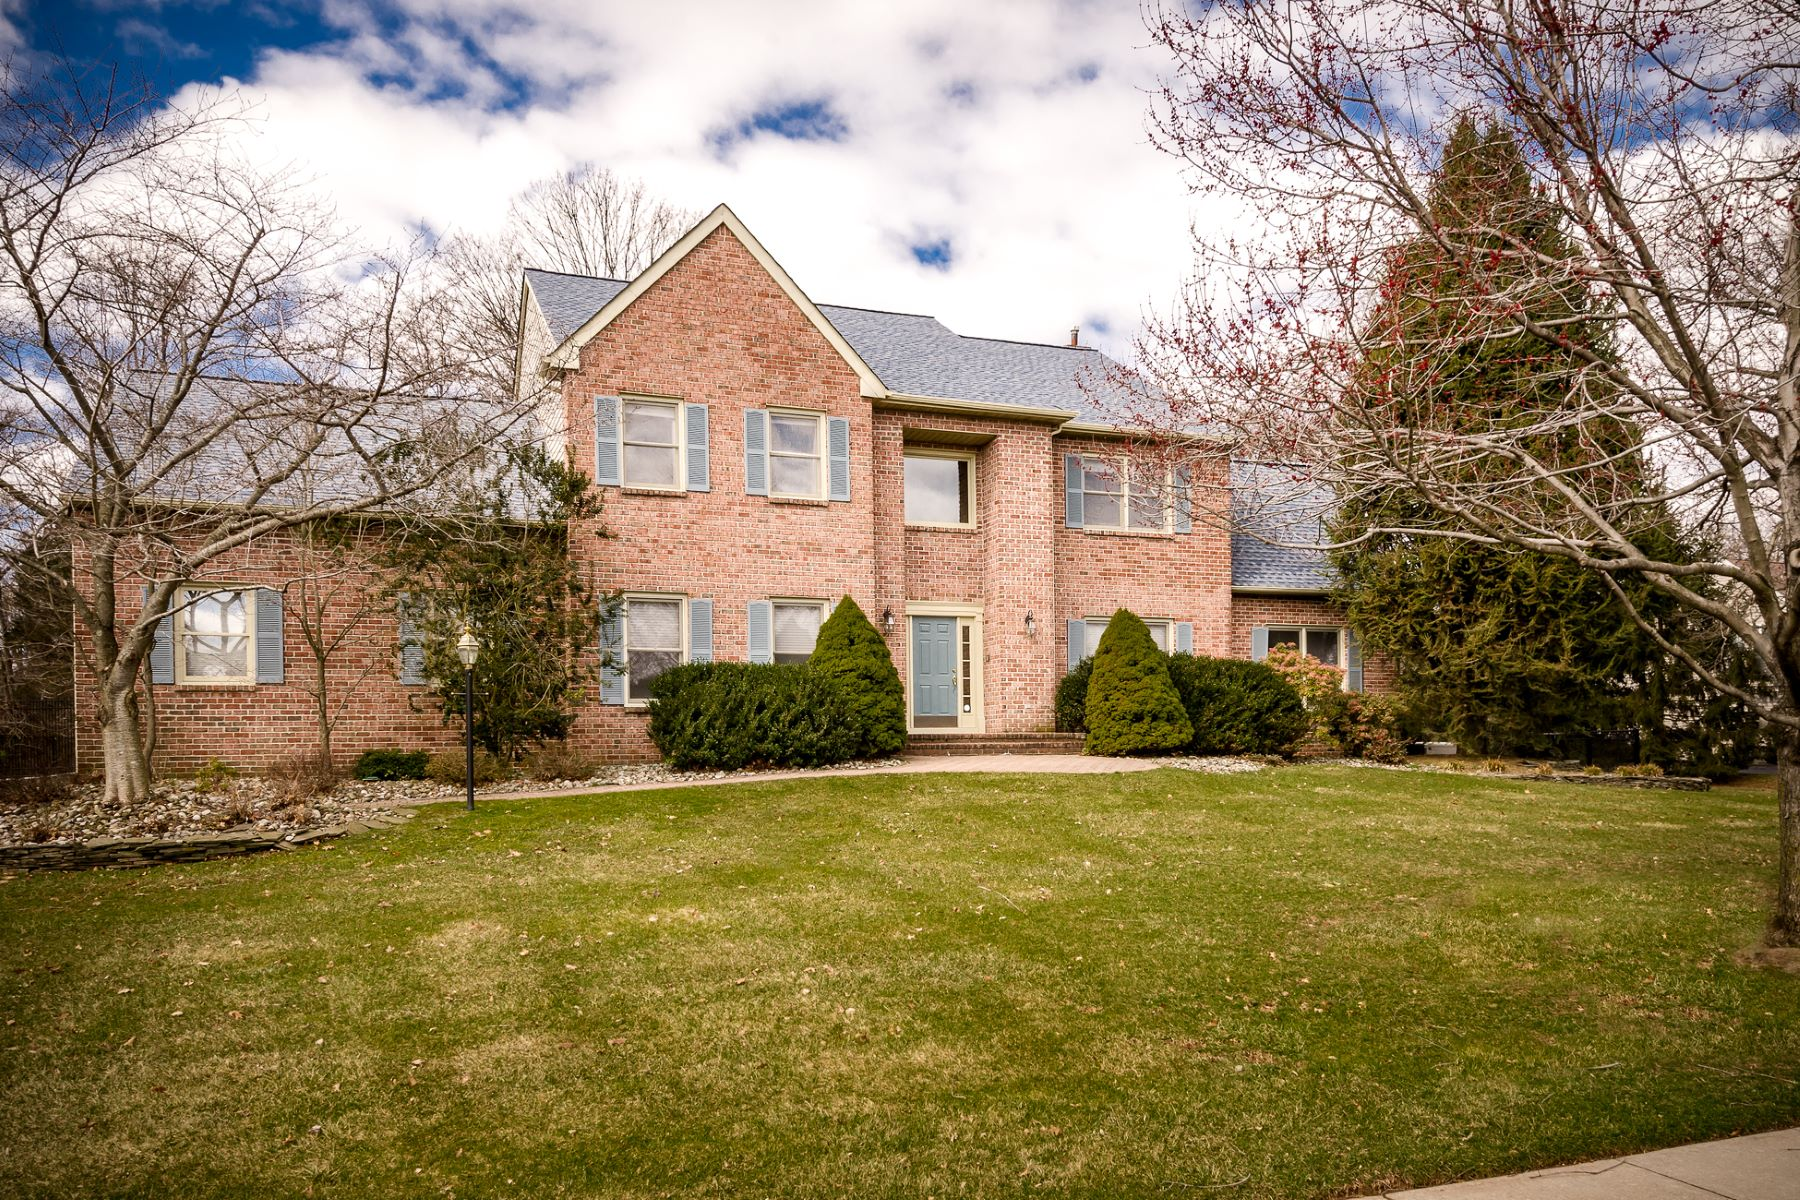 Single Family Home for Sale at The Warmth and Comfort Of A Traditional Floor Plan 24 Lowry Court, Skillman, New Jersey, 08558 United StatesIn/Around: Montgomery Township